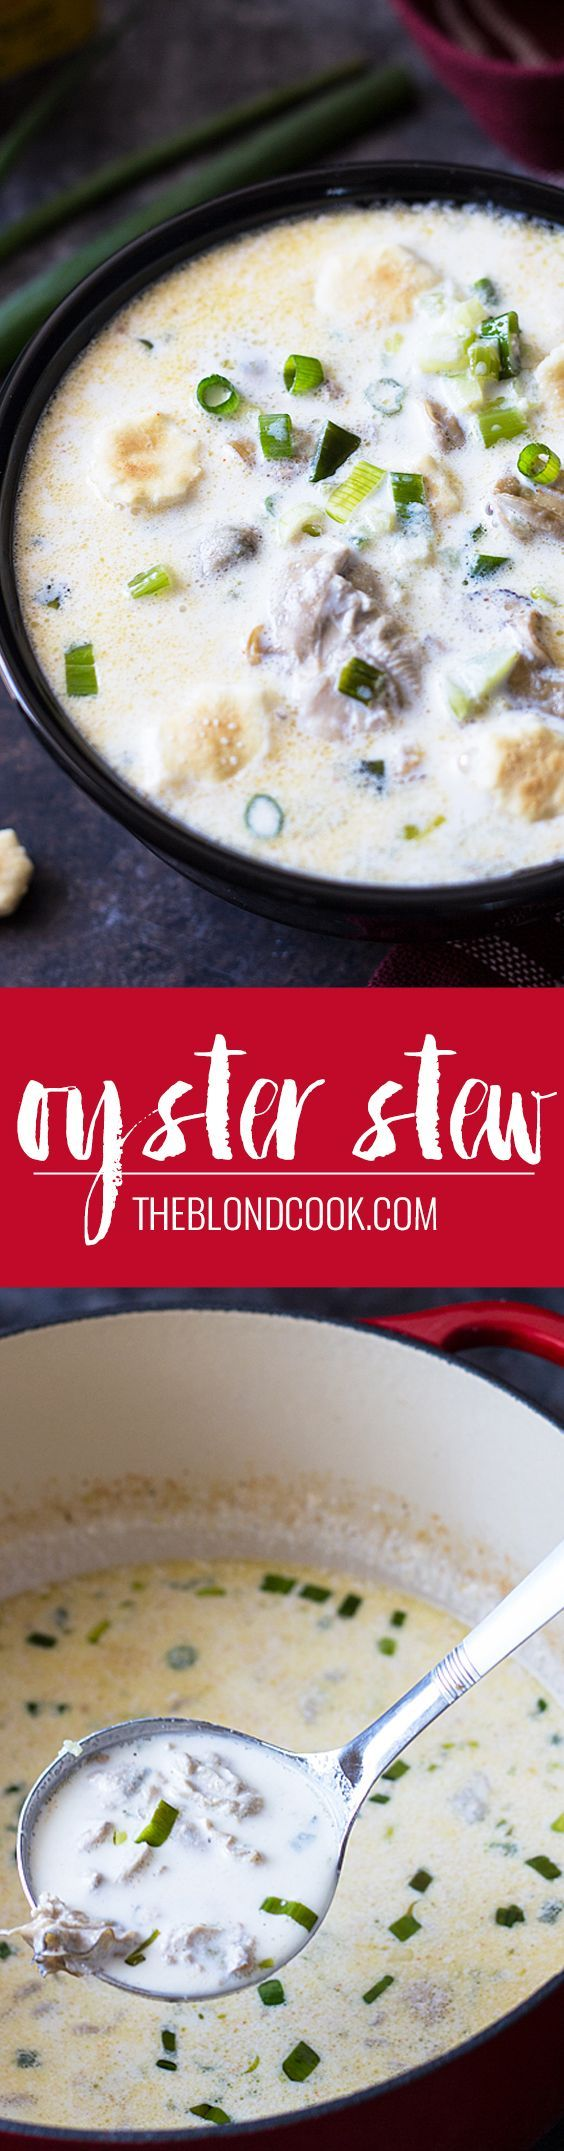 Oyster Stew - Seasoned perfectly and comes together in 15 minutes! How easy is that? theblondcook.com